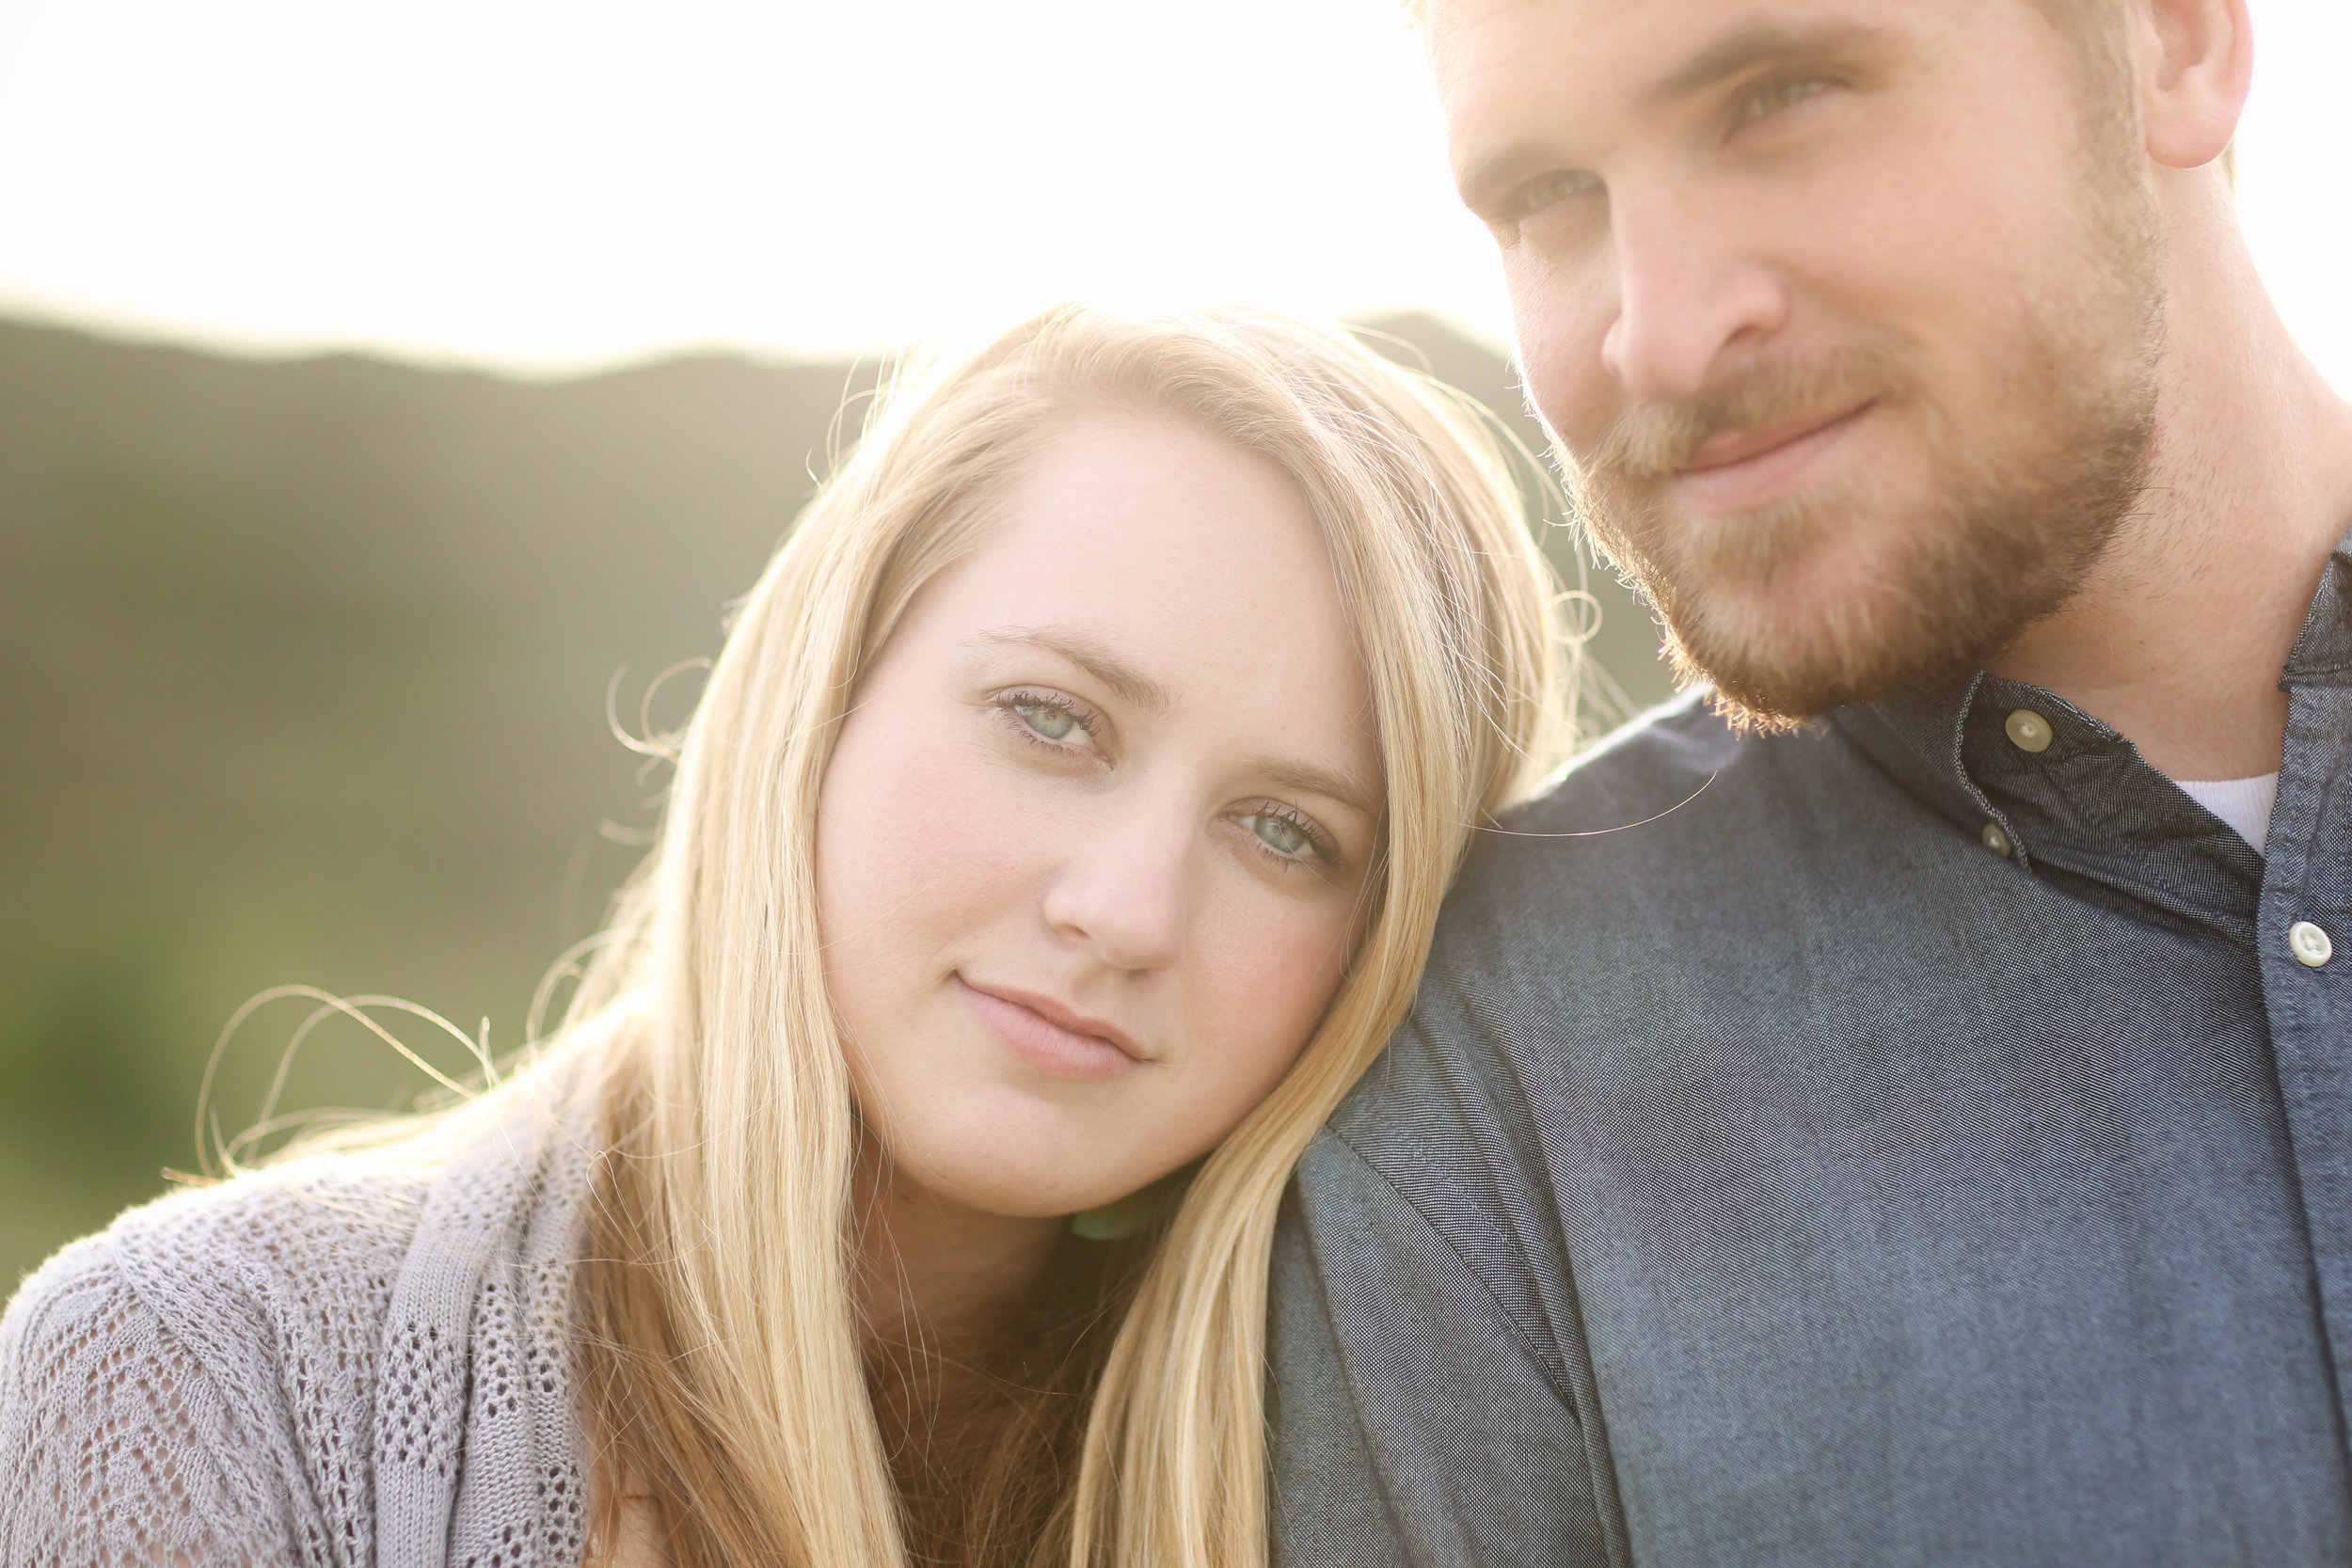 Girl with content look on her face leans her head on her fiance posing for her engagement photos.